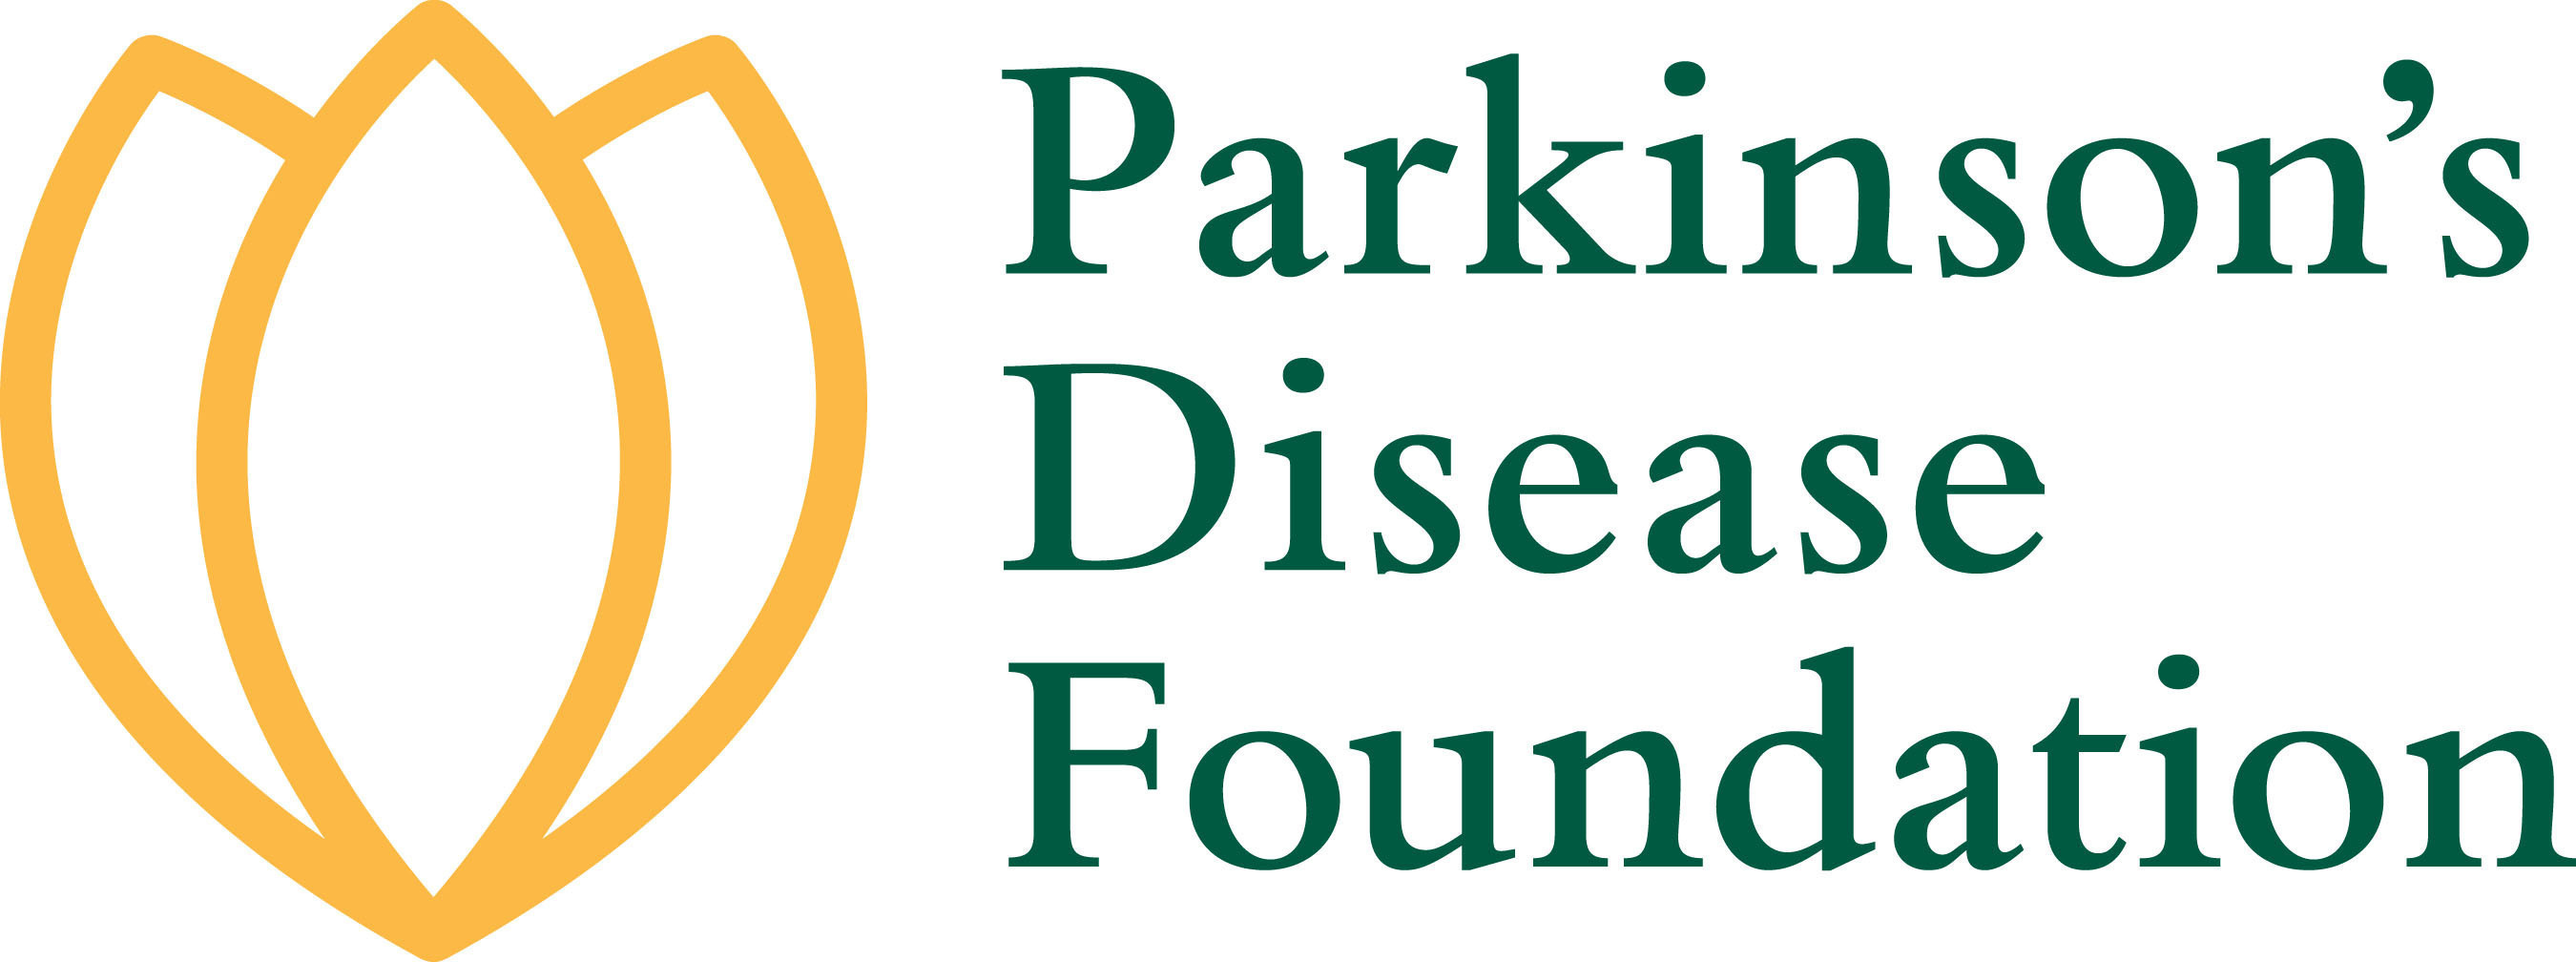 Parkinson's Disease Foundation logo